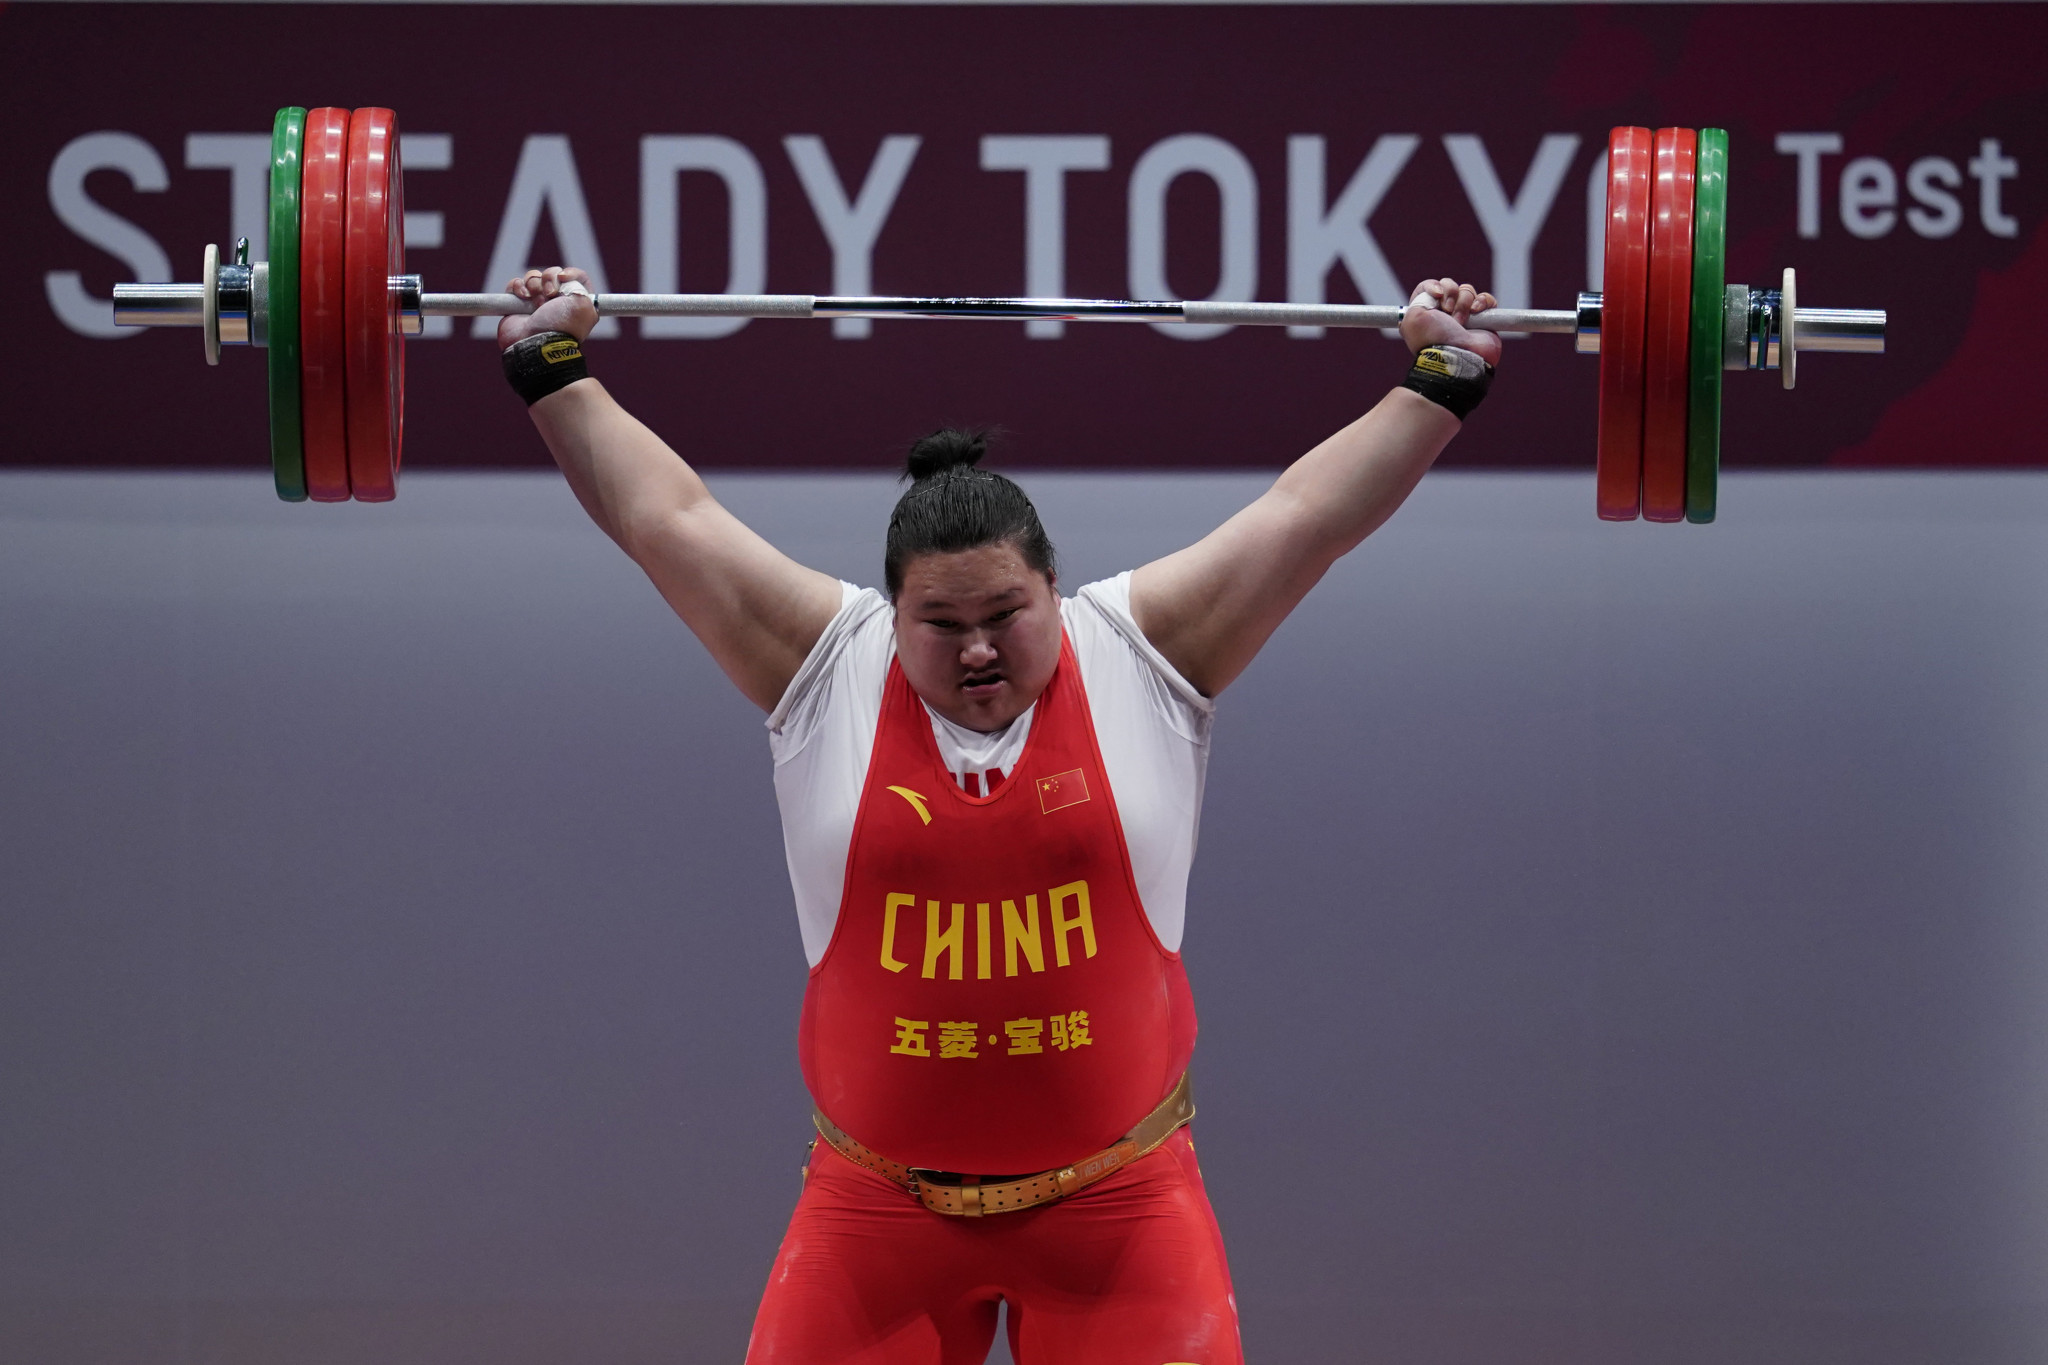 China's Li Wenwen will now be a strong favourite for gold at Tokyo 2020 following Kashirina's suspension ©Getty Images